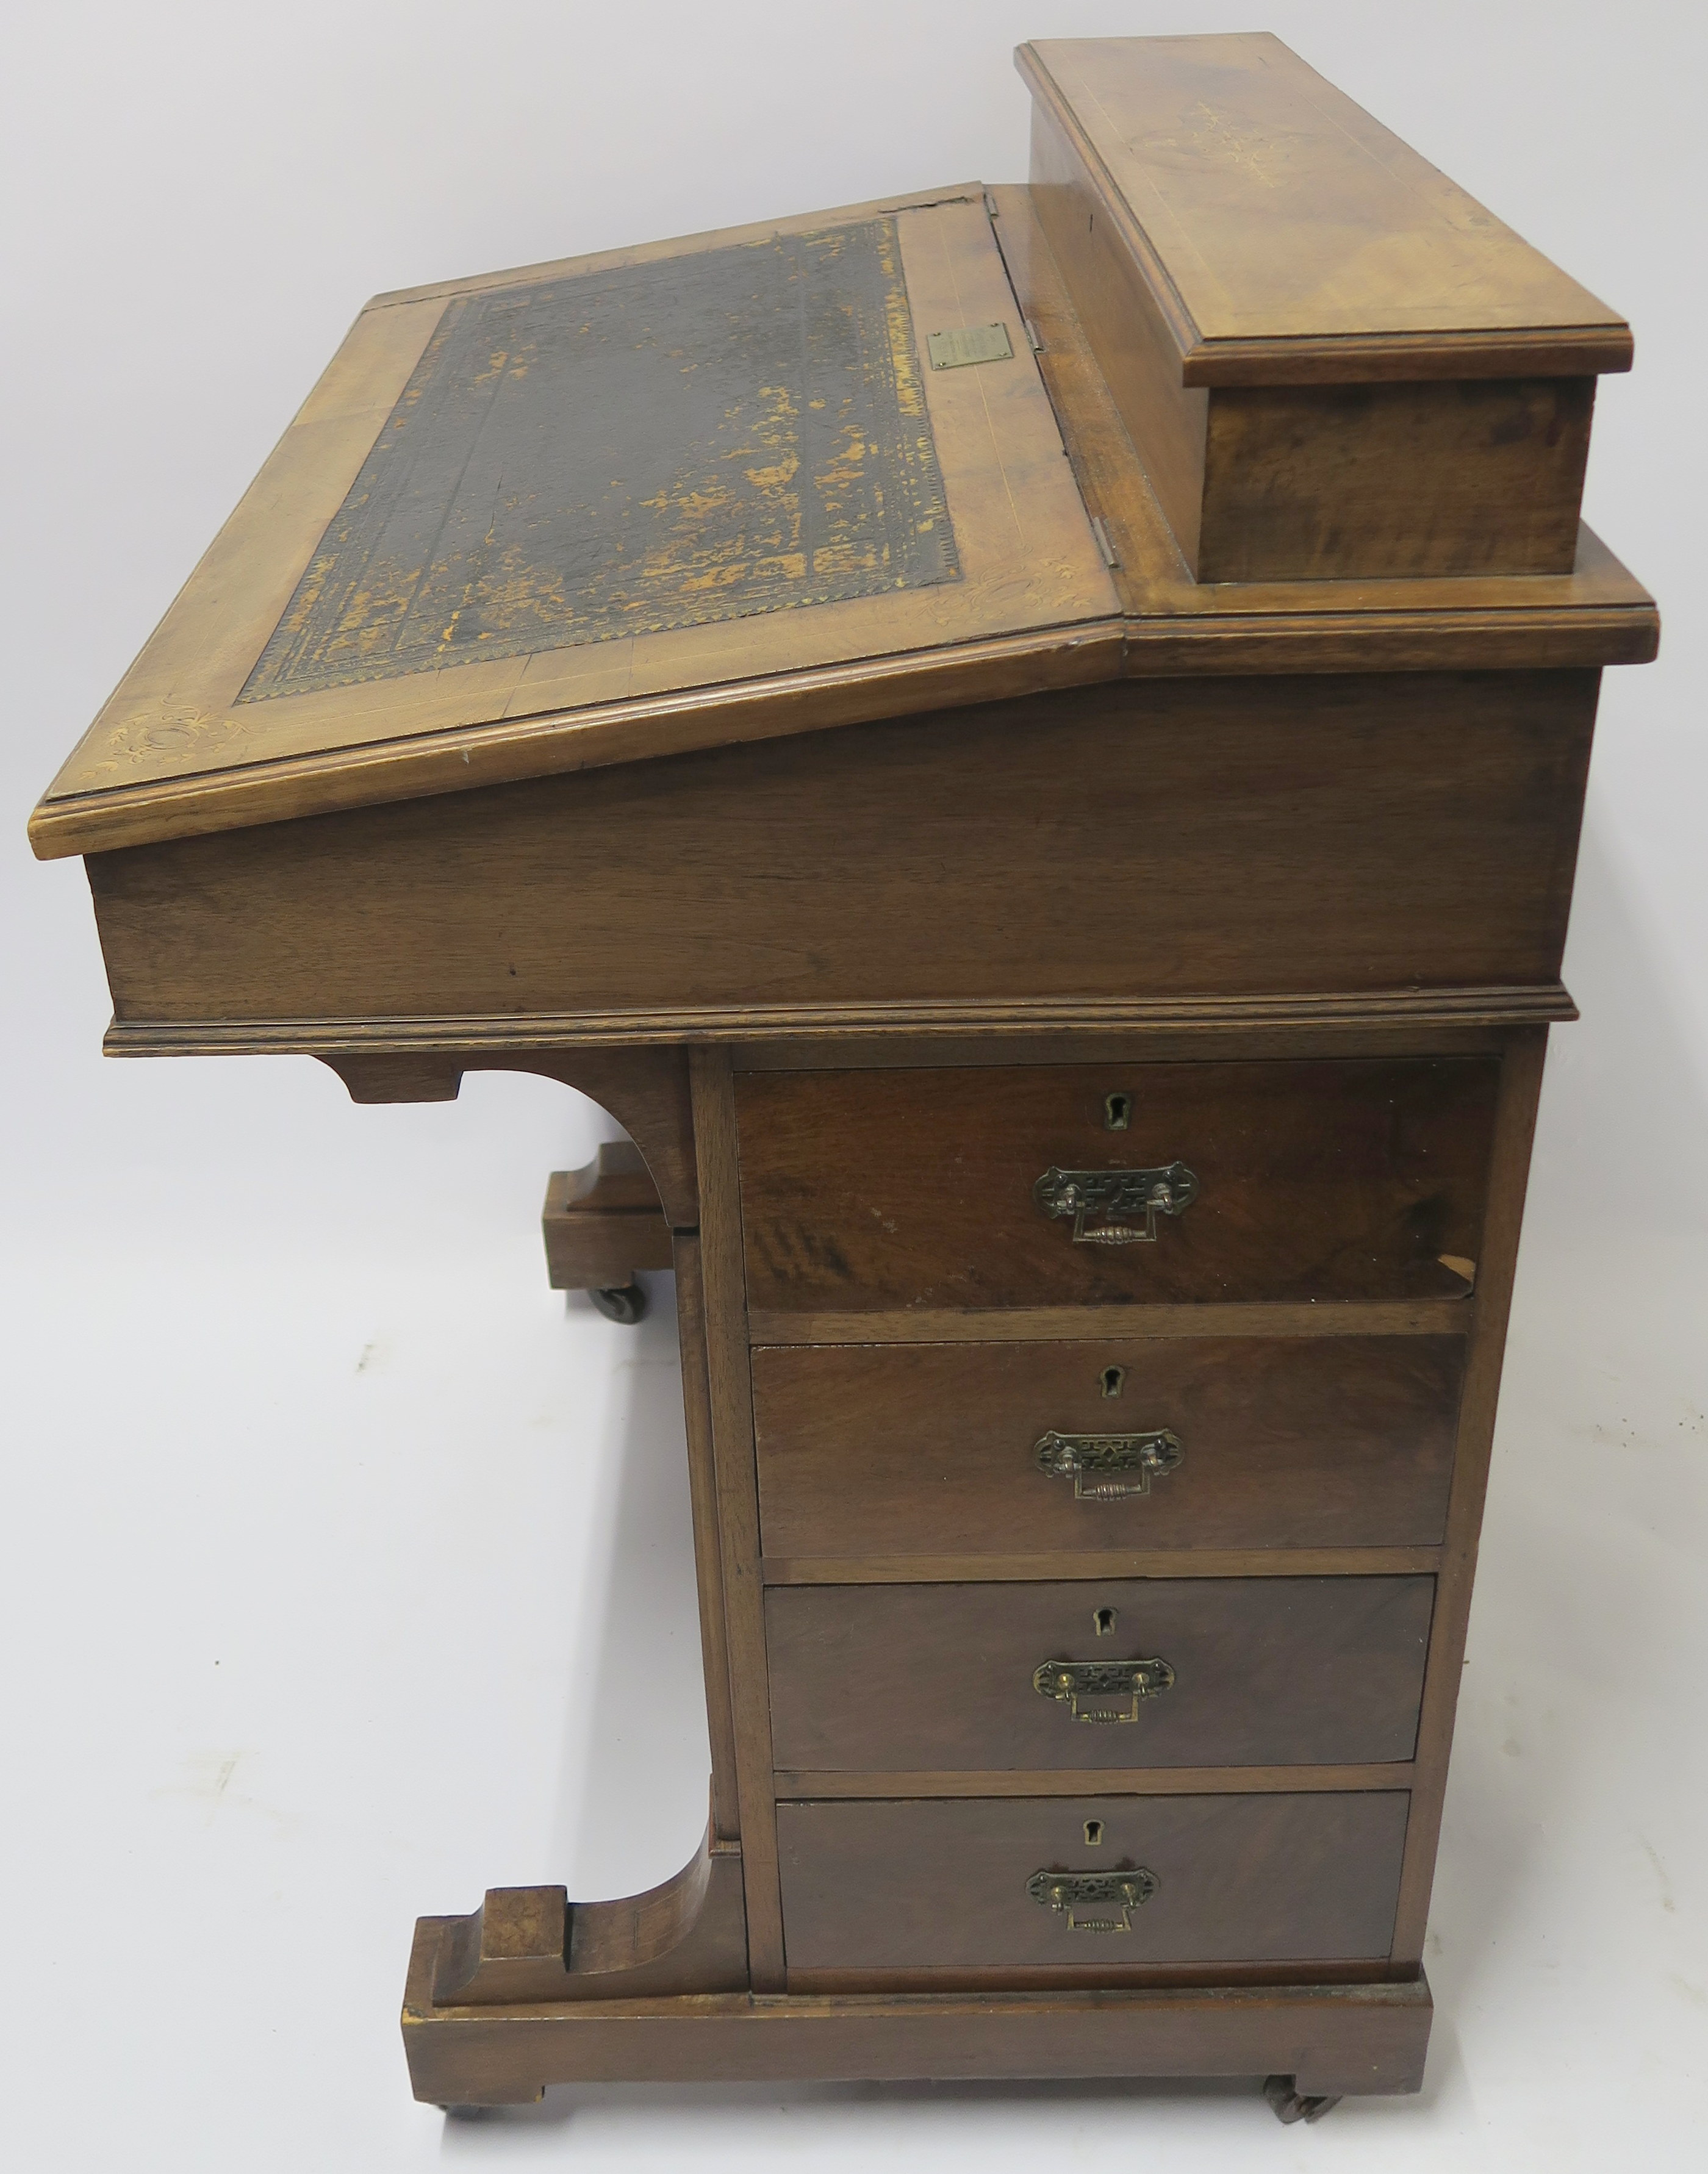 A VICTORIAN INLAID WALNUT DAVENPORT of standard design with four drawers 95cm high, 75cm wide and - Image 8 of 9